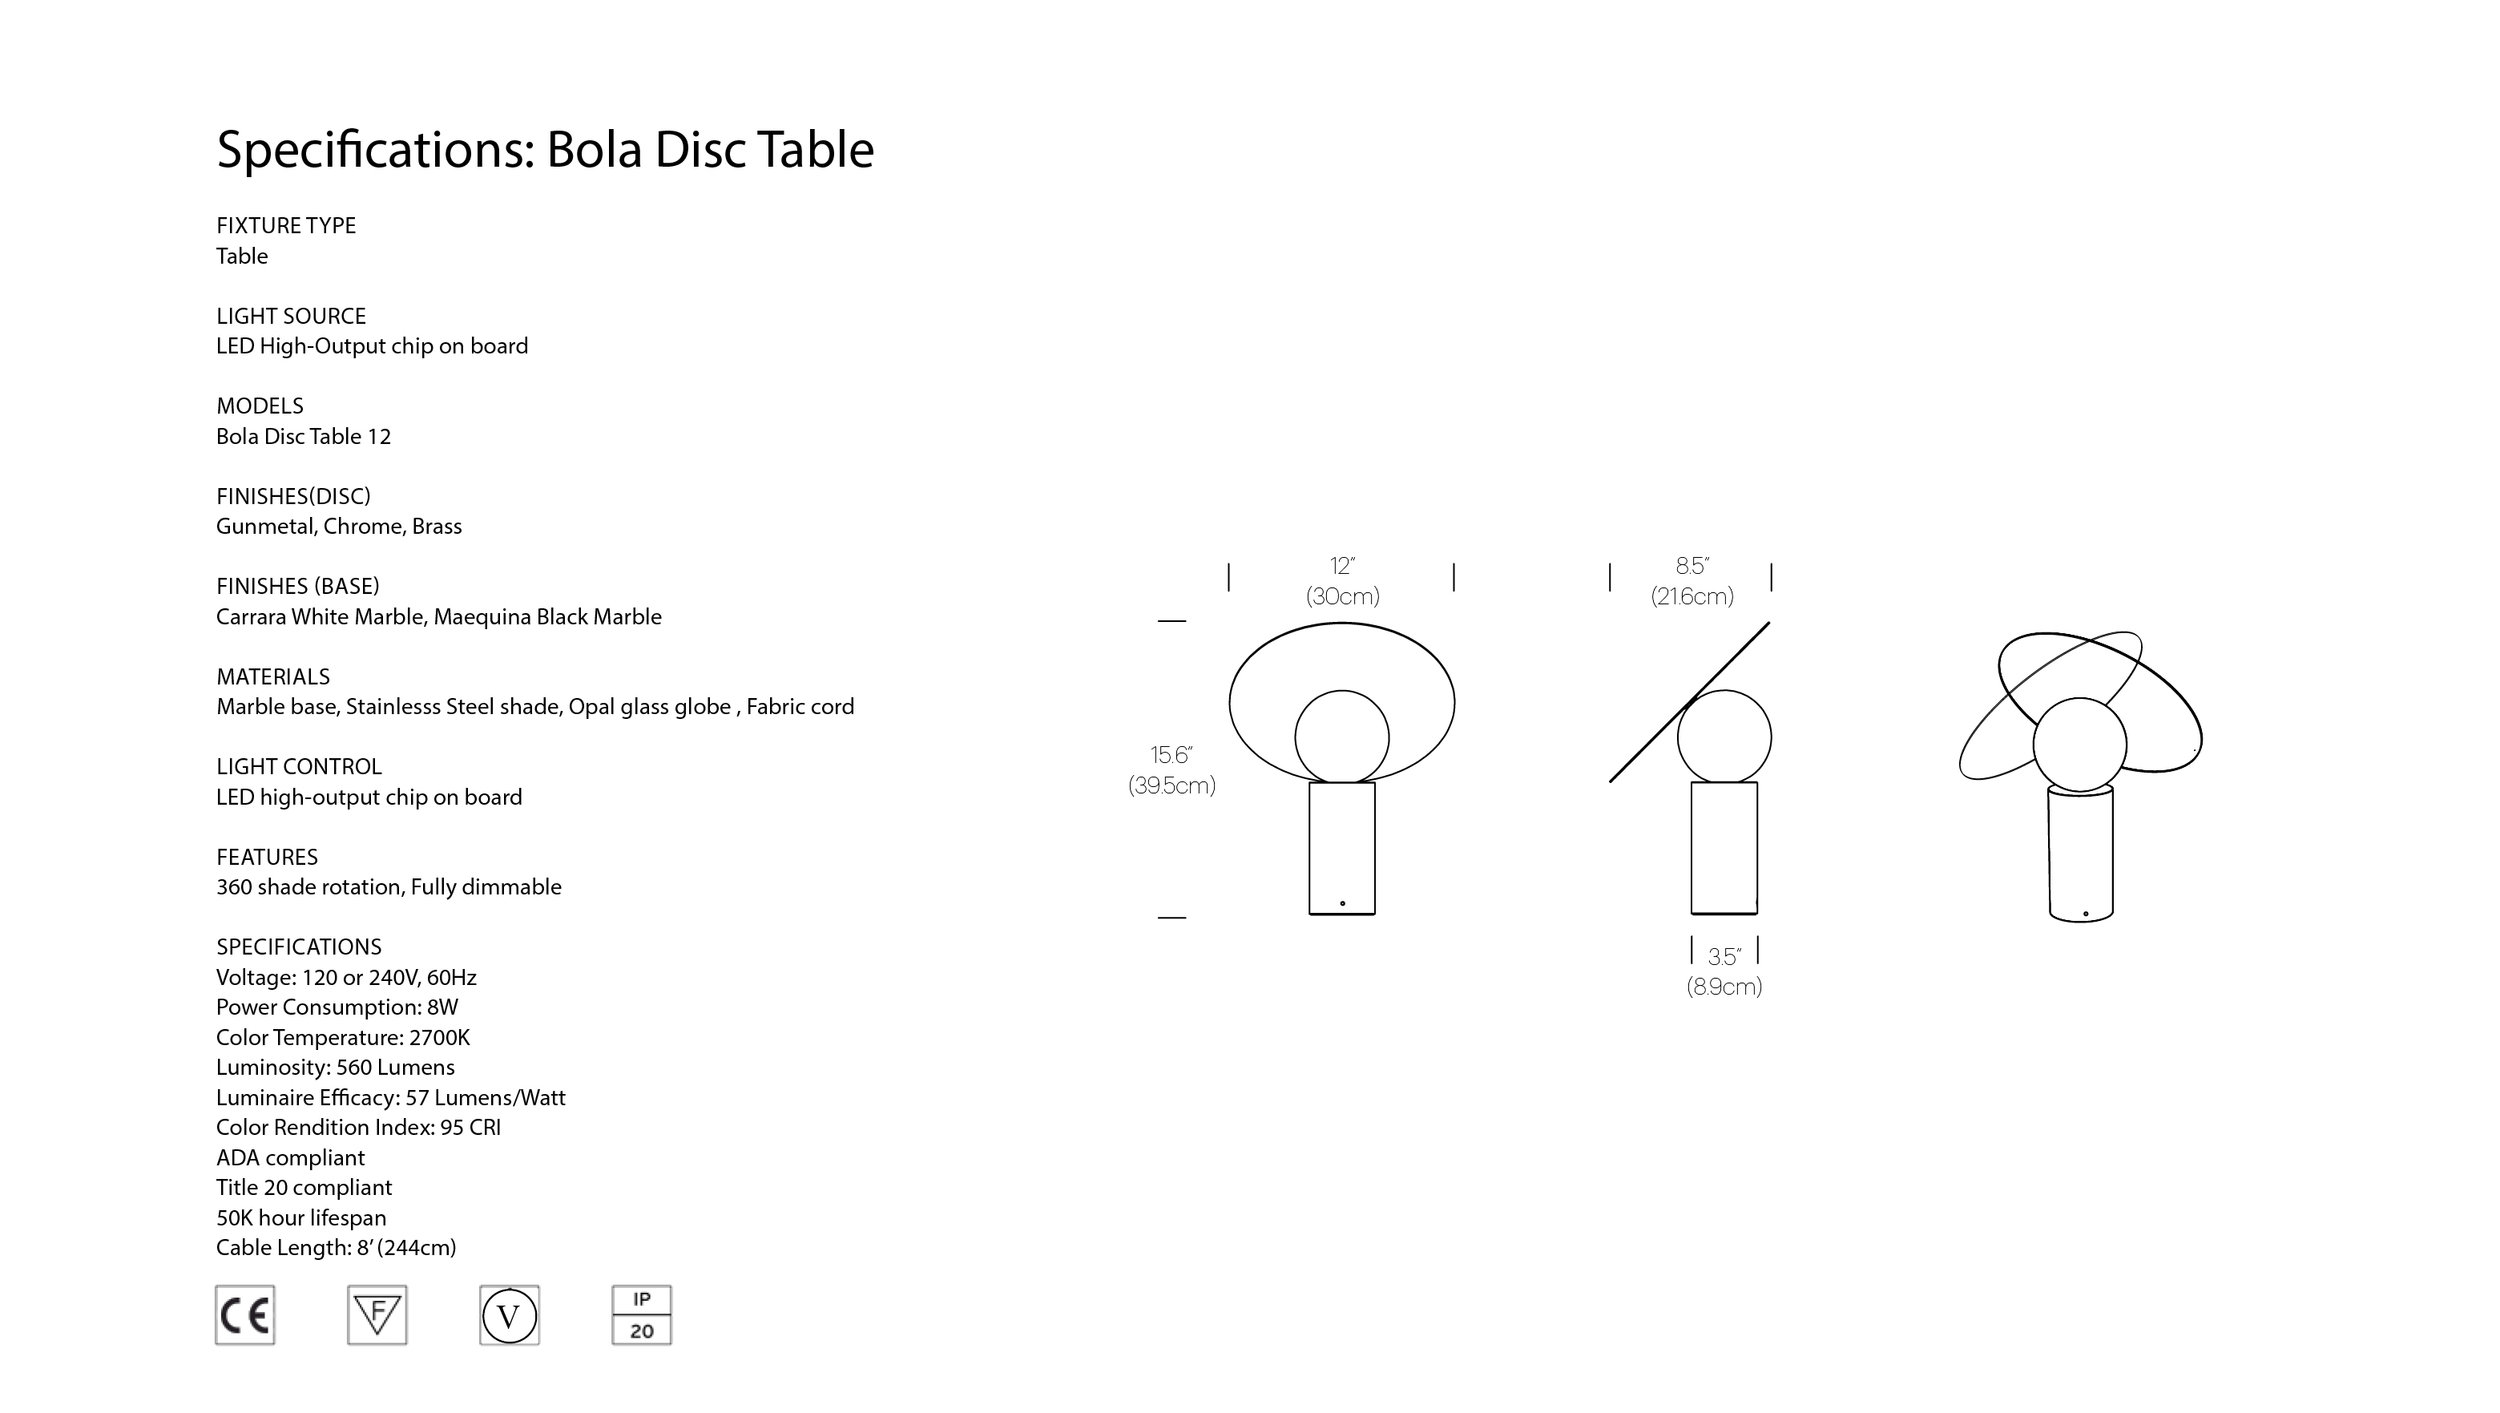 EU Bola Disc Table.jpg